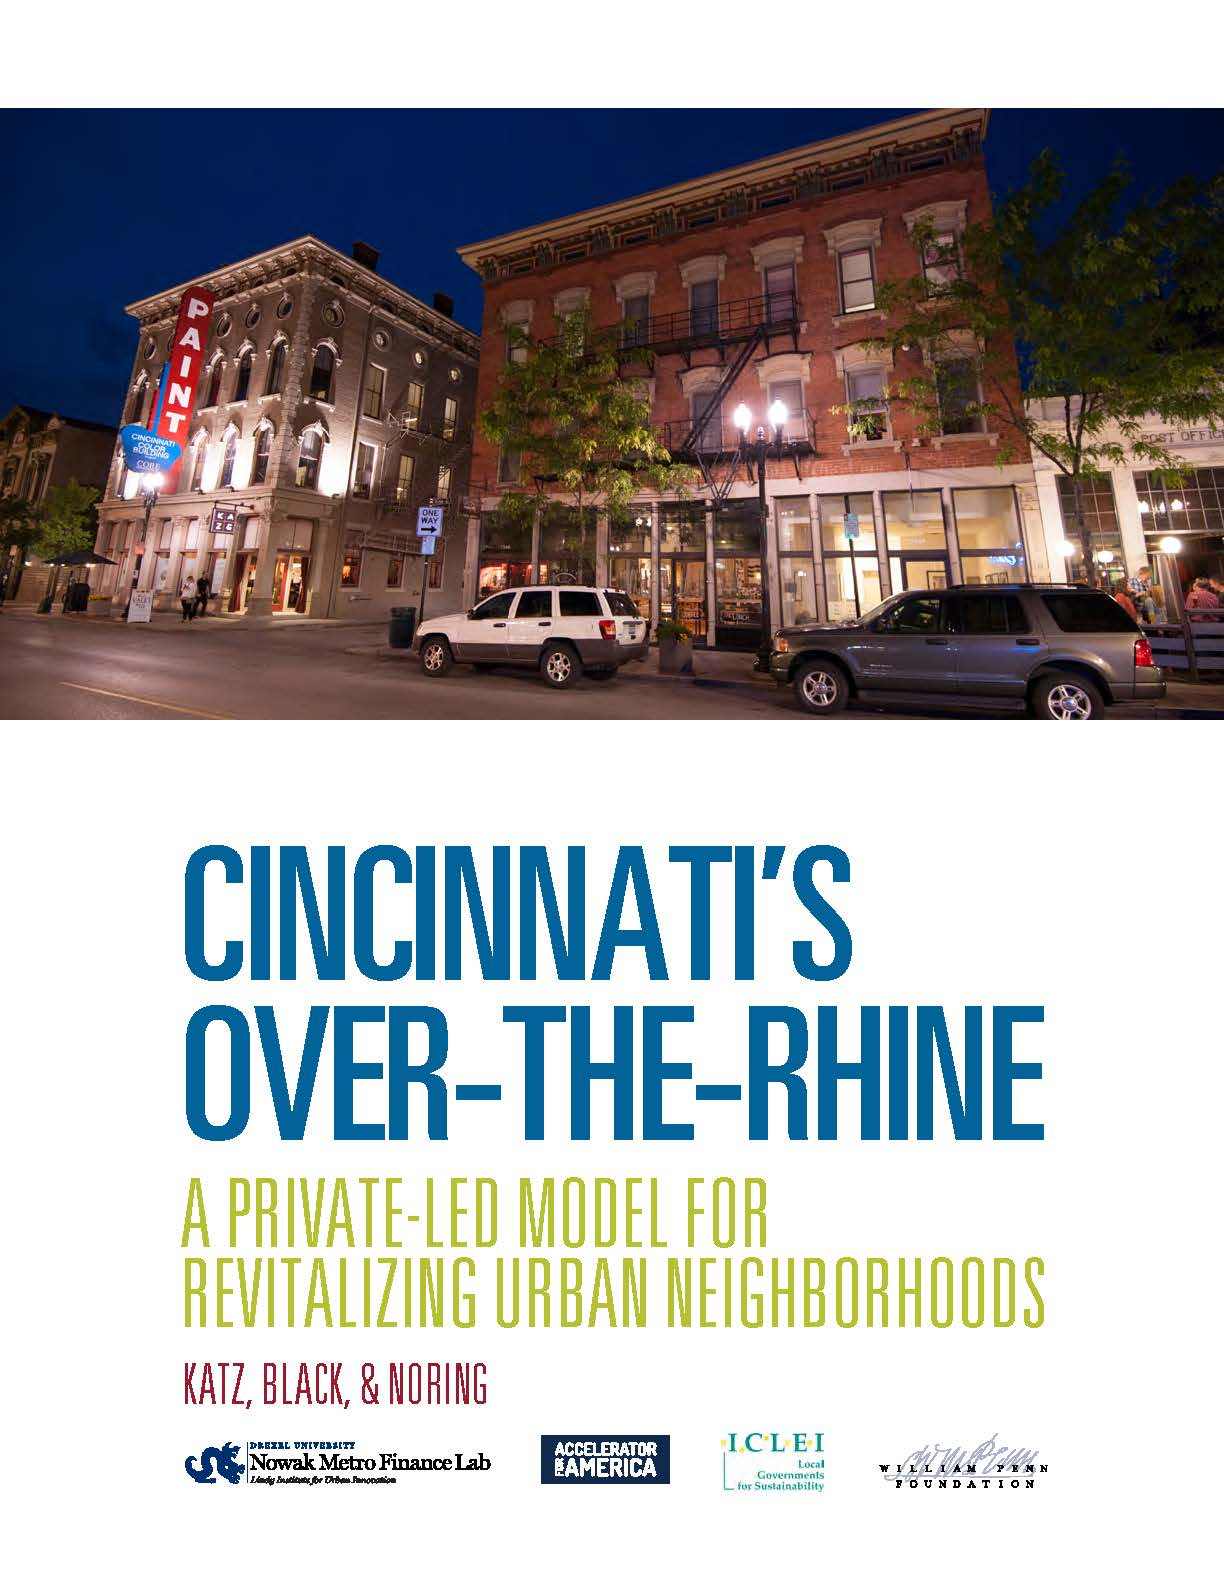 Cover page of CINCINNATI'S OVER-THE-RHINE A PRIVATE LED MODEL FOR REVITALIZING URBAN NEIGHBORHOODS